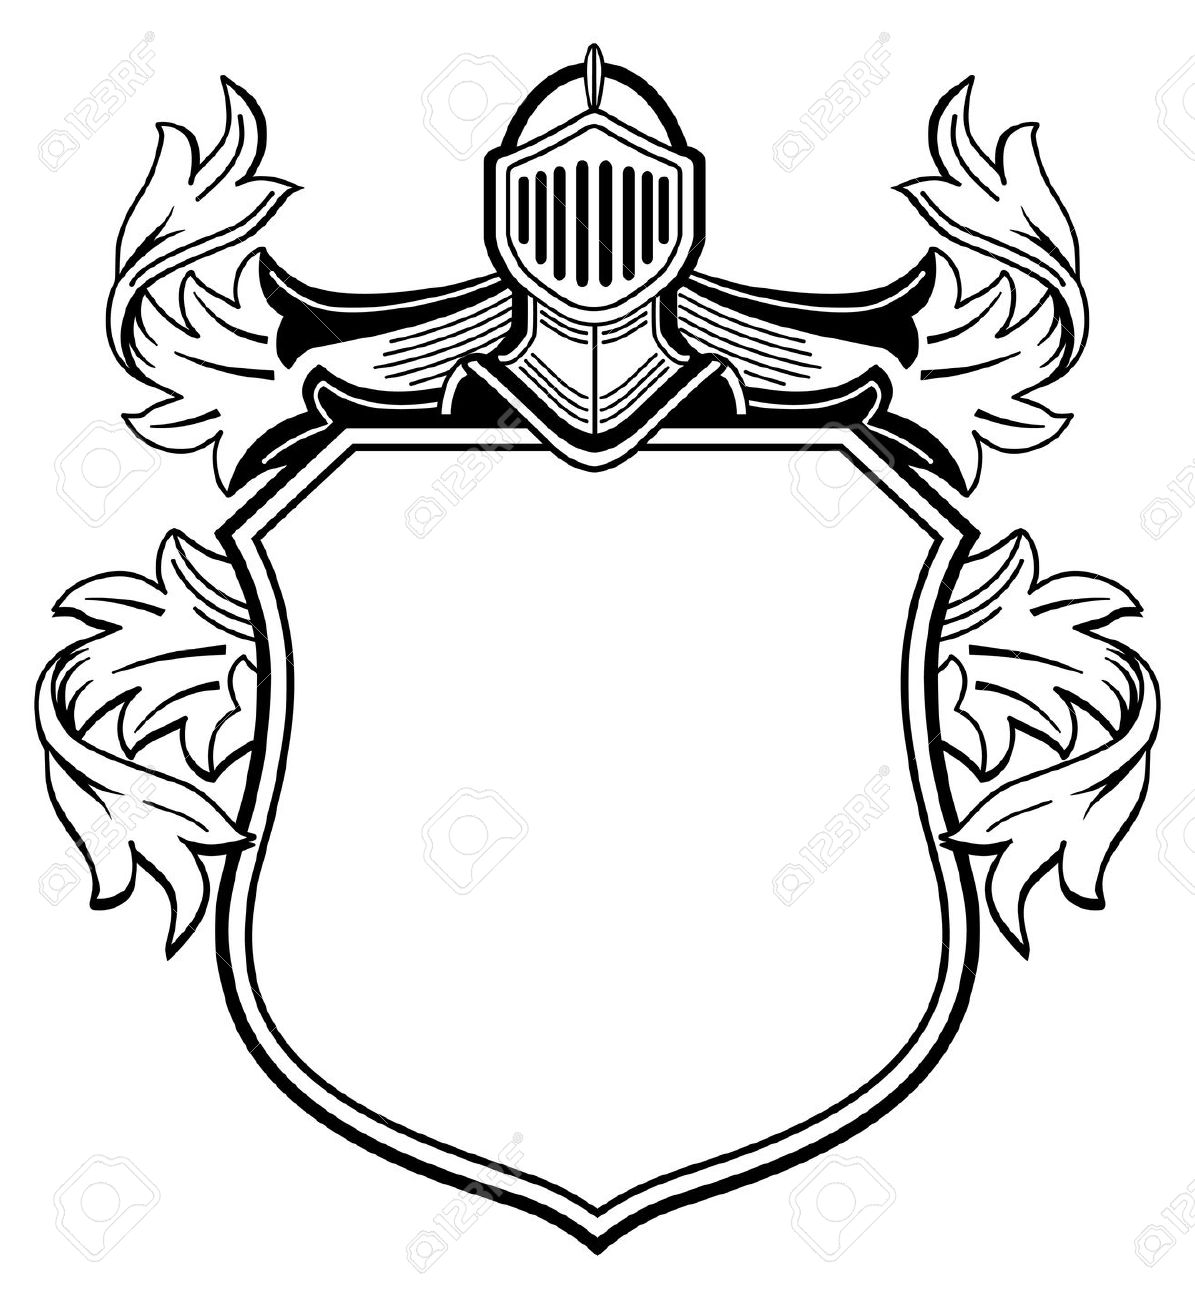 Knights shield border clipart black and white clip art free library Shield Clipart Black And White | Free download best Shield ... clip art free library